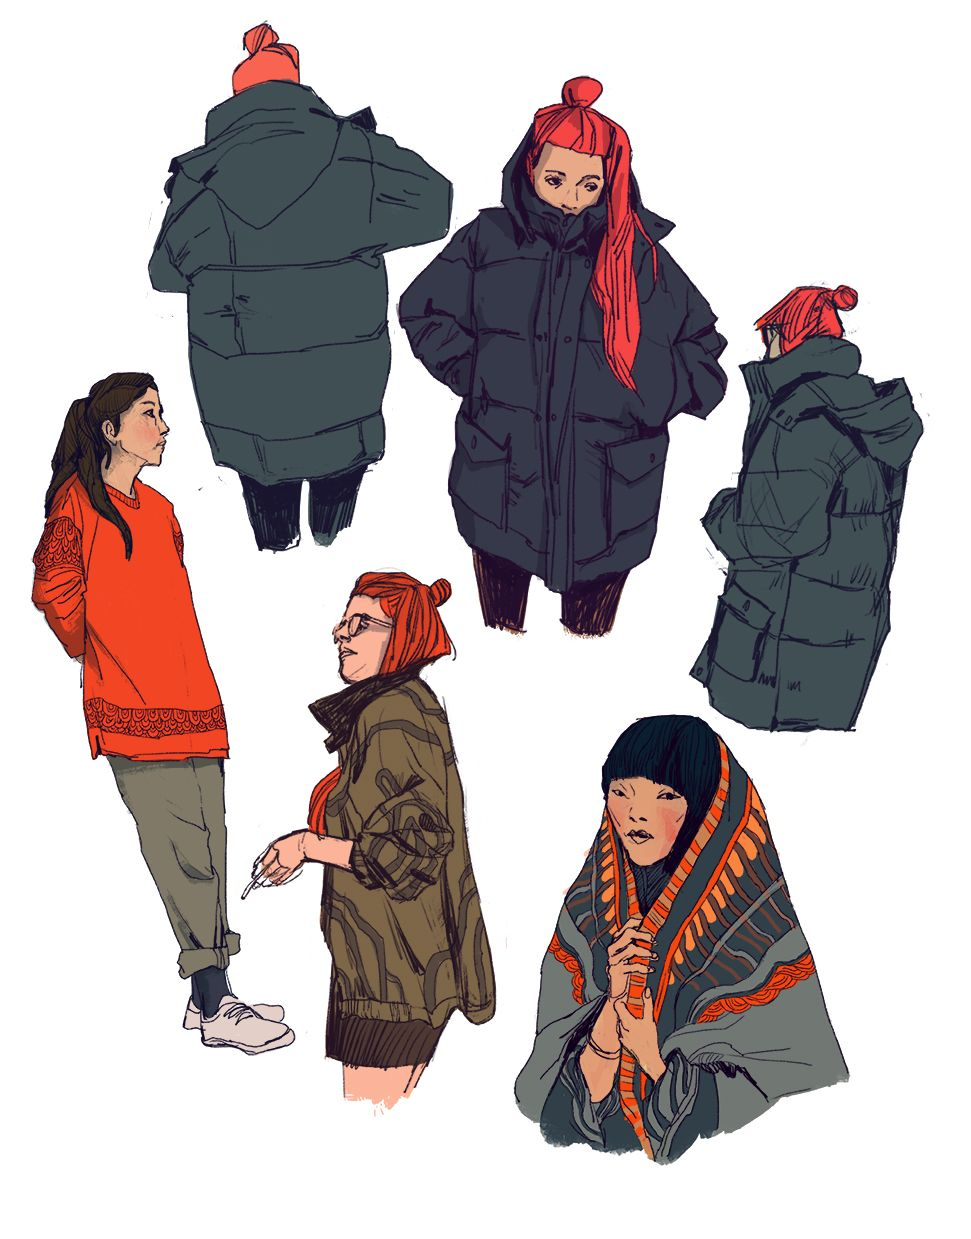 I recognozied that I haven't post any sketches/studies for a looong time. These are from April 16